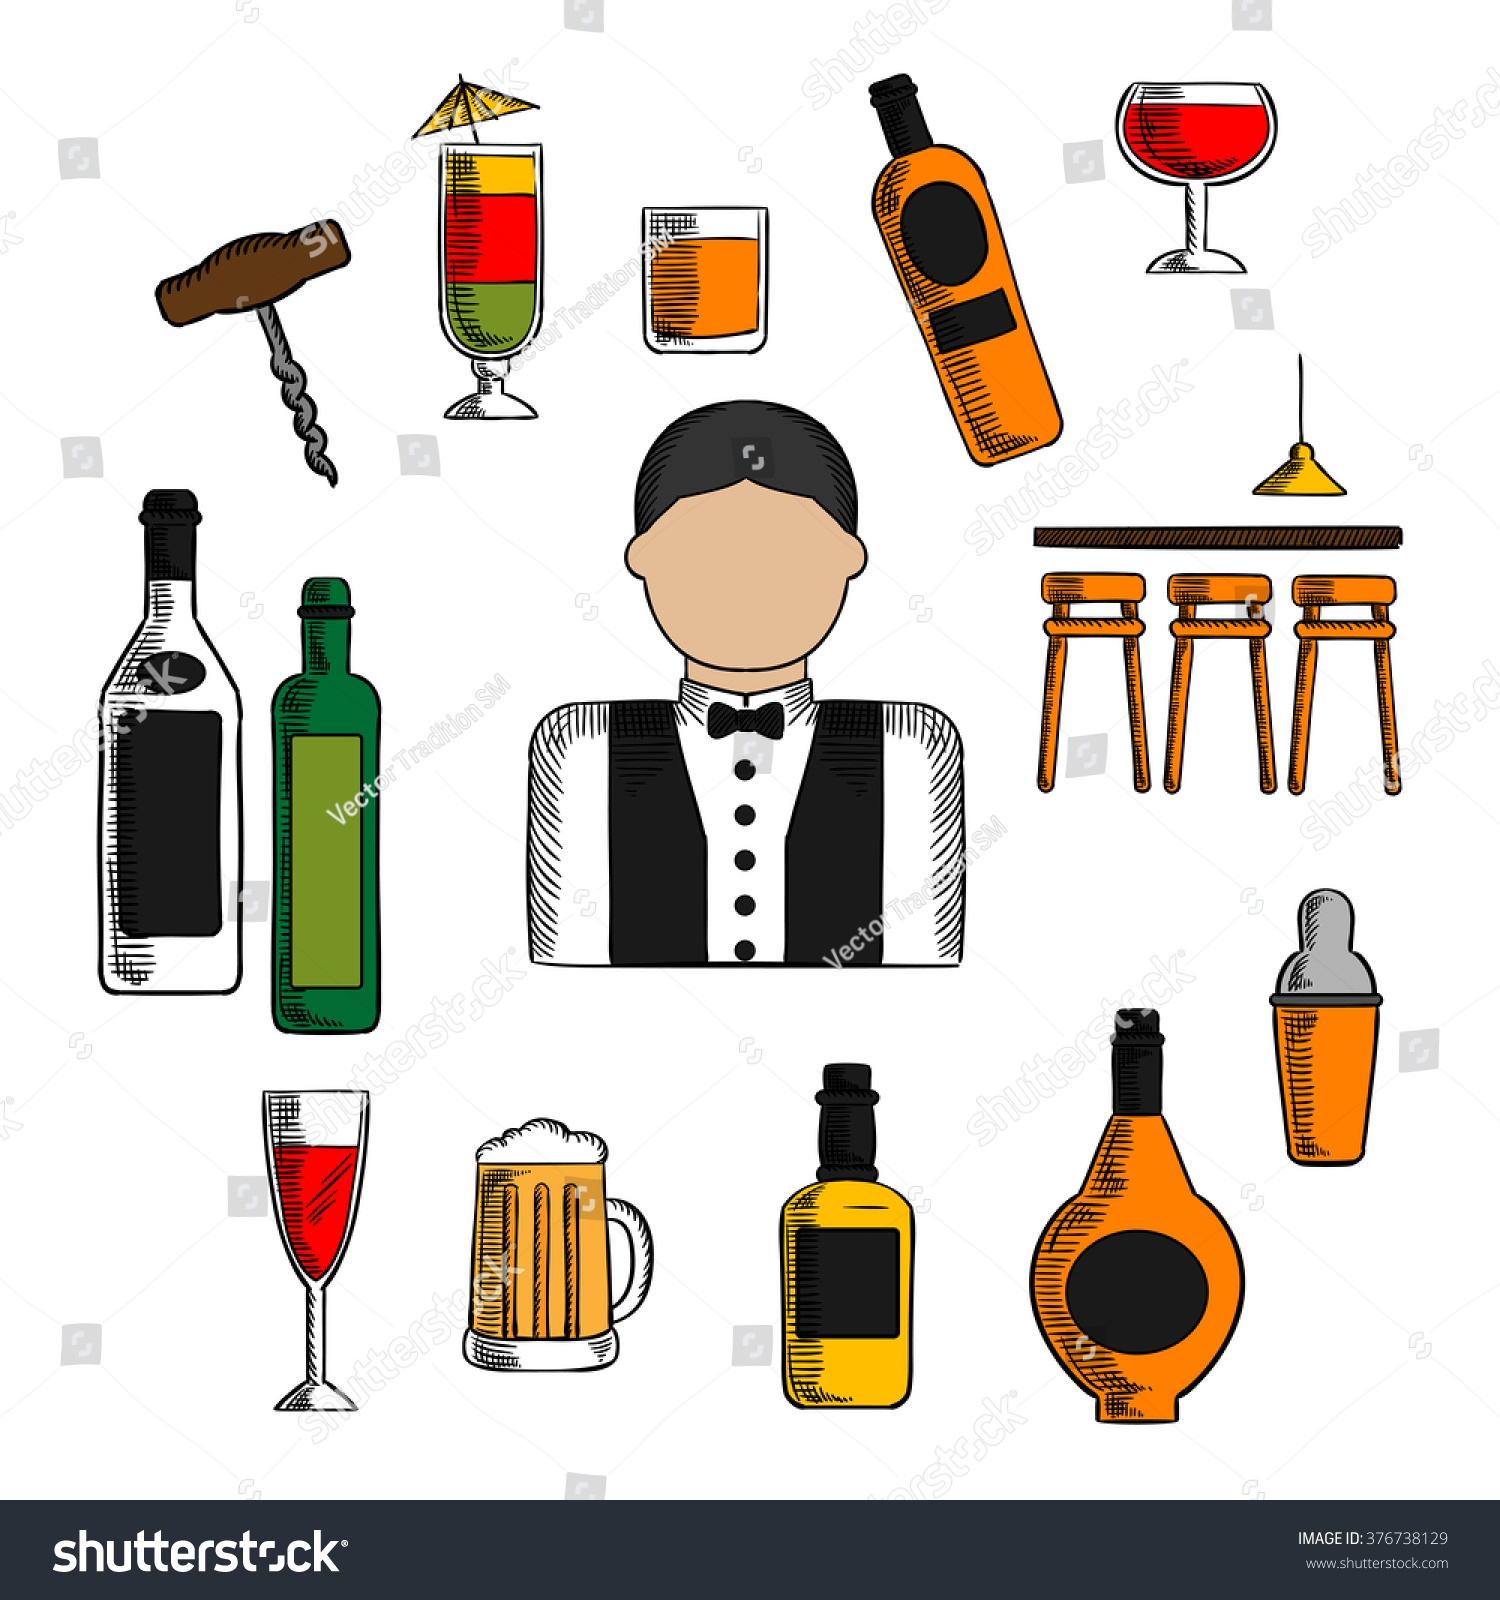 Awesome design digital collection. Bar clipart alcohol